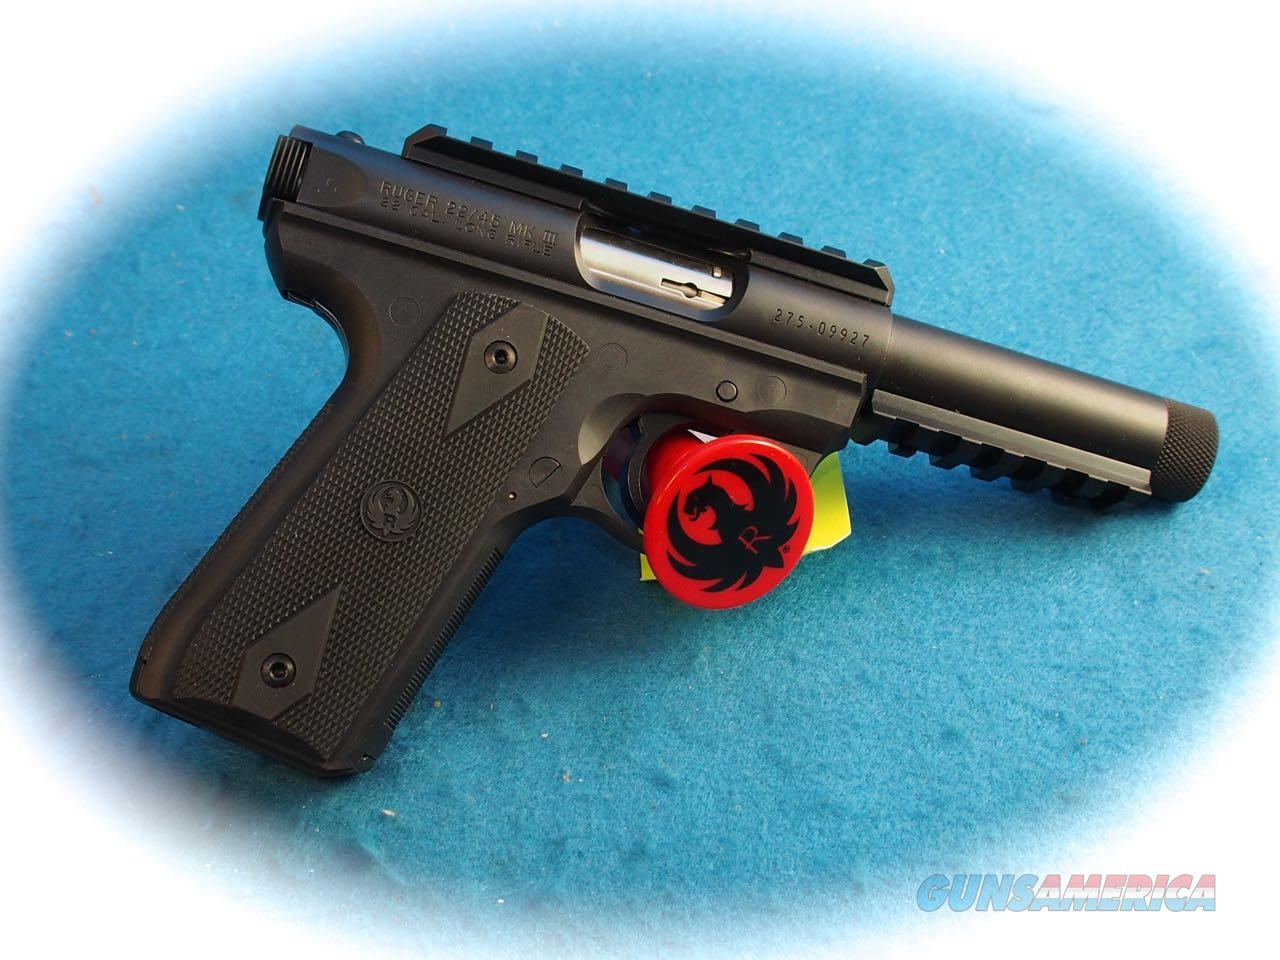 Ruger 22/45 .22LR Semi Auto Pistol Threaded Barrel Model 10149 **New**  Guns > Pistols > Ruger Semi-Auto Pistols > 22/45